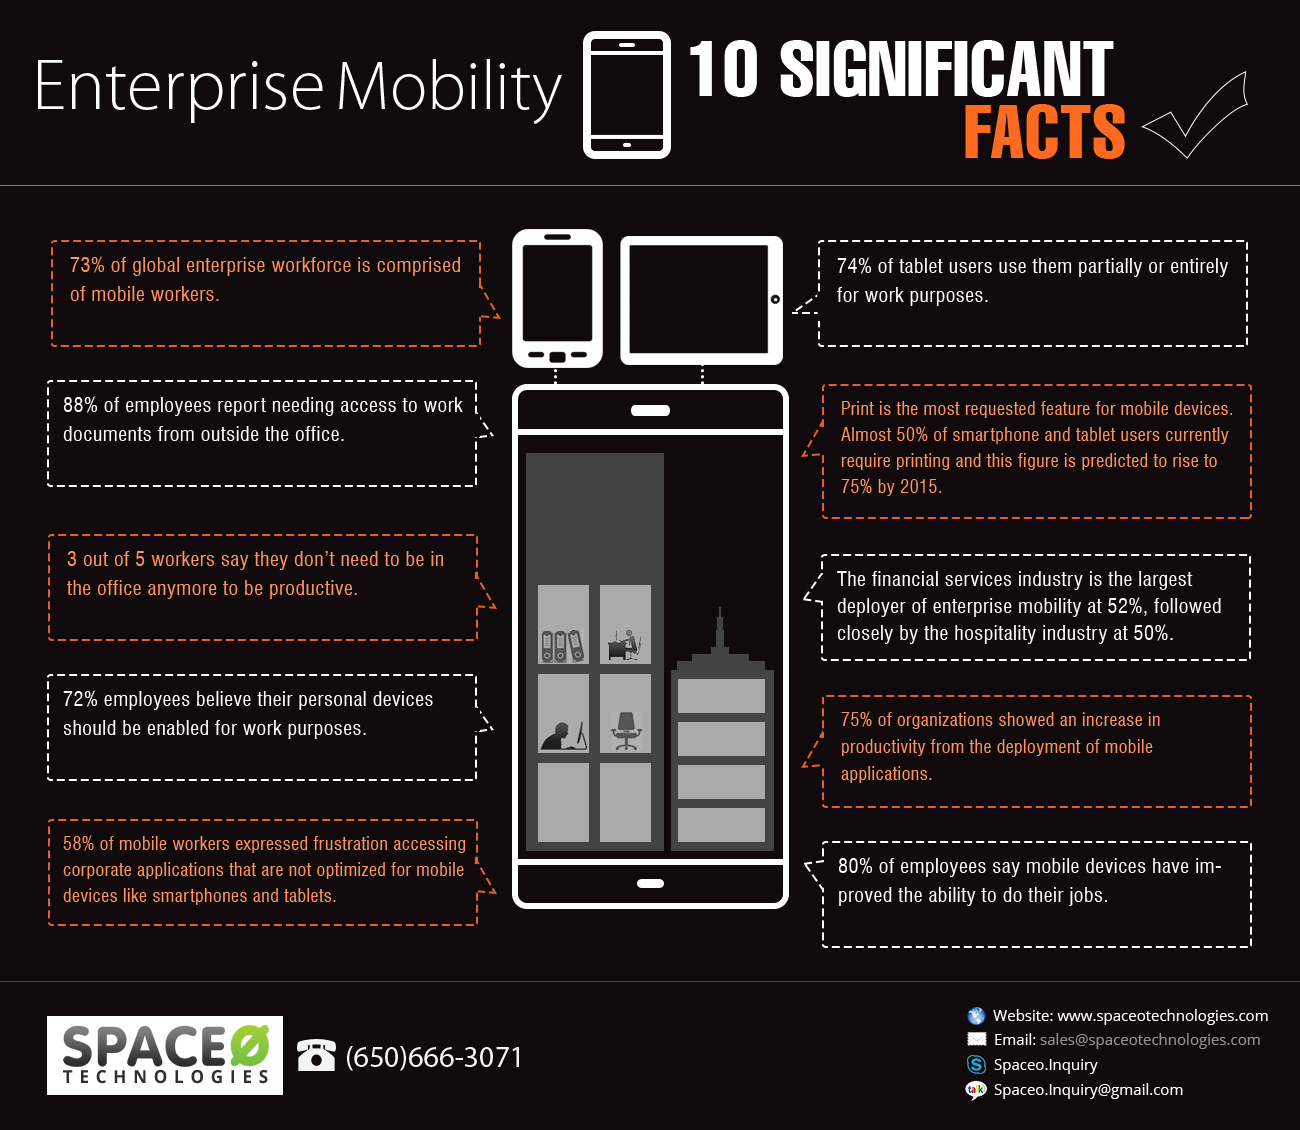 10 Things You Must Know About Enterprise Mobility